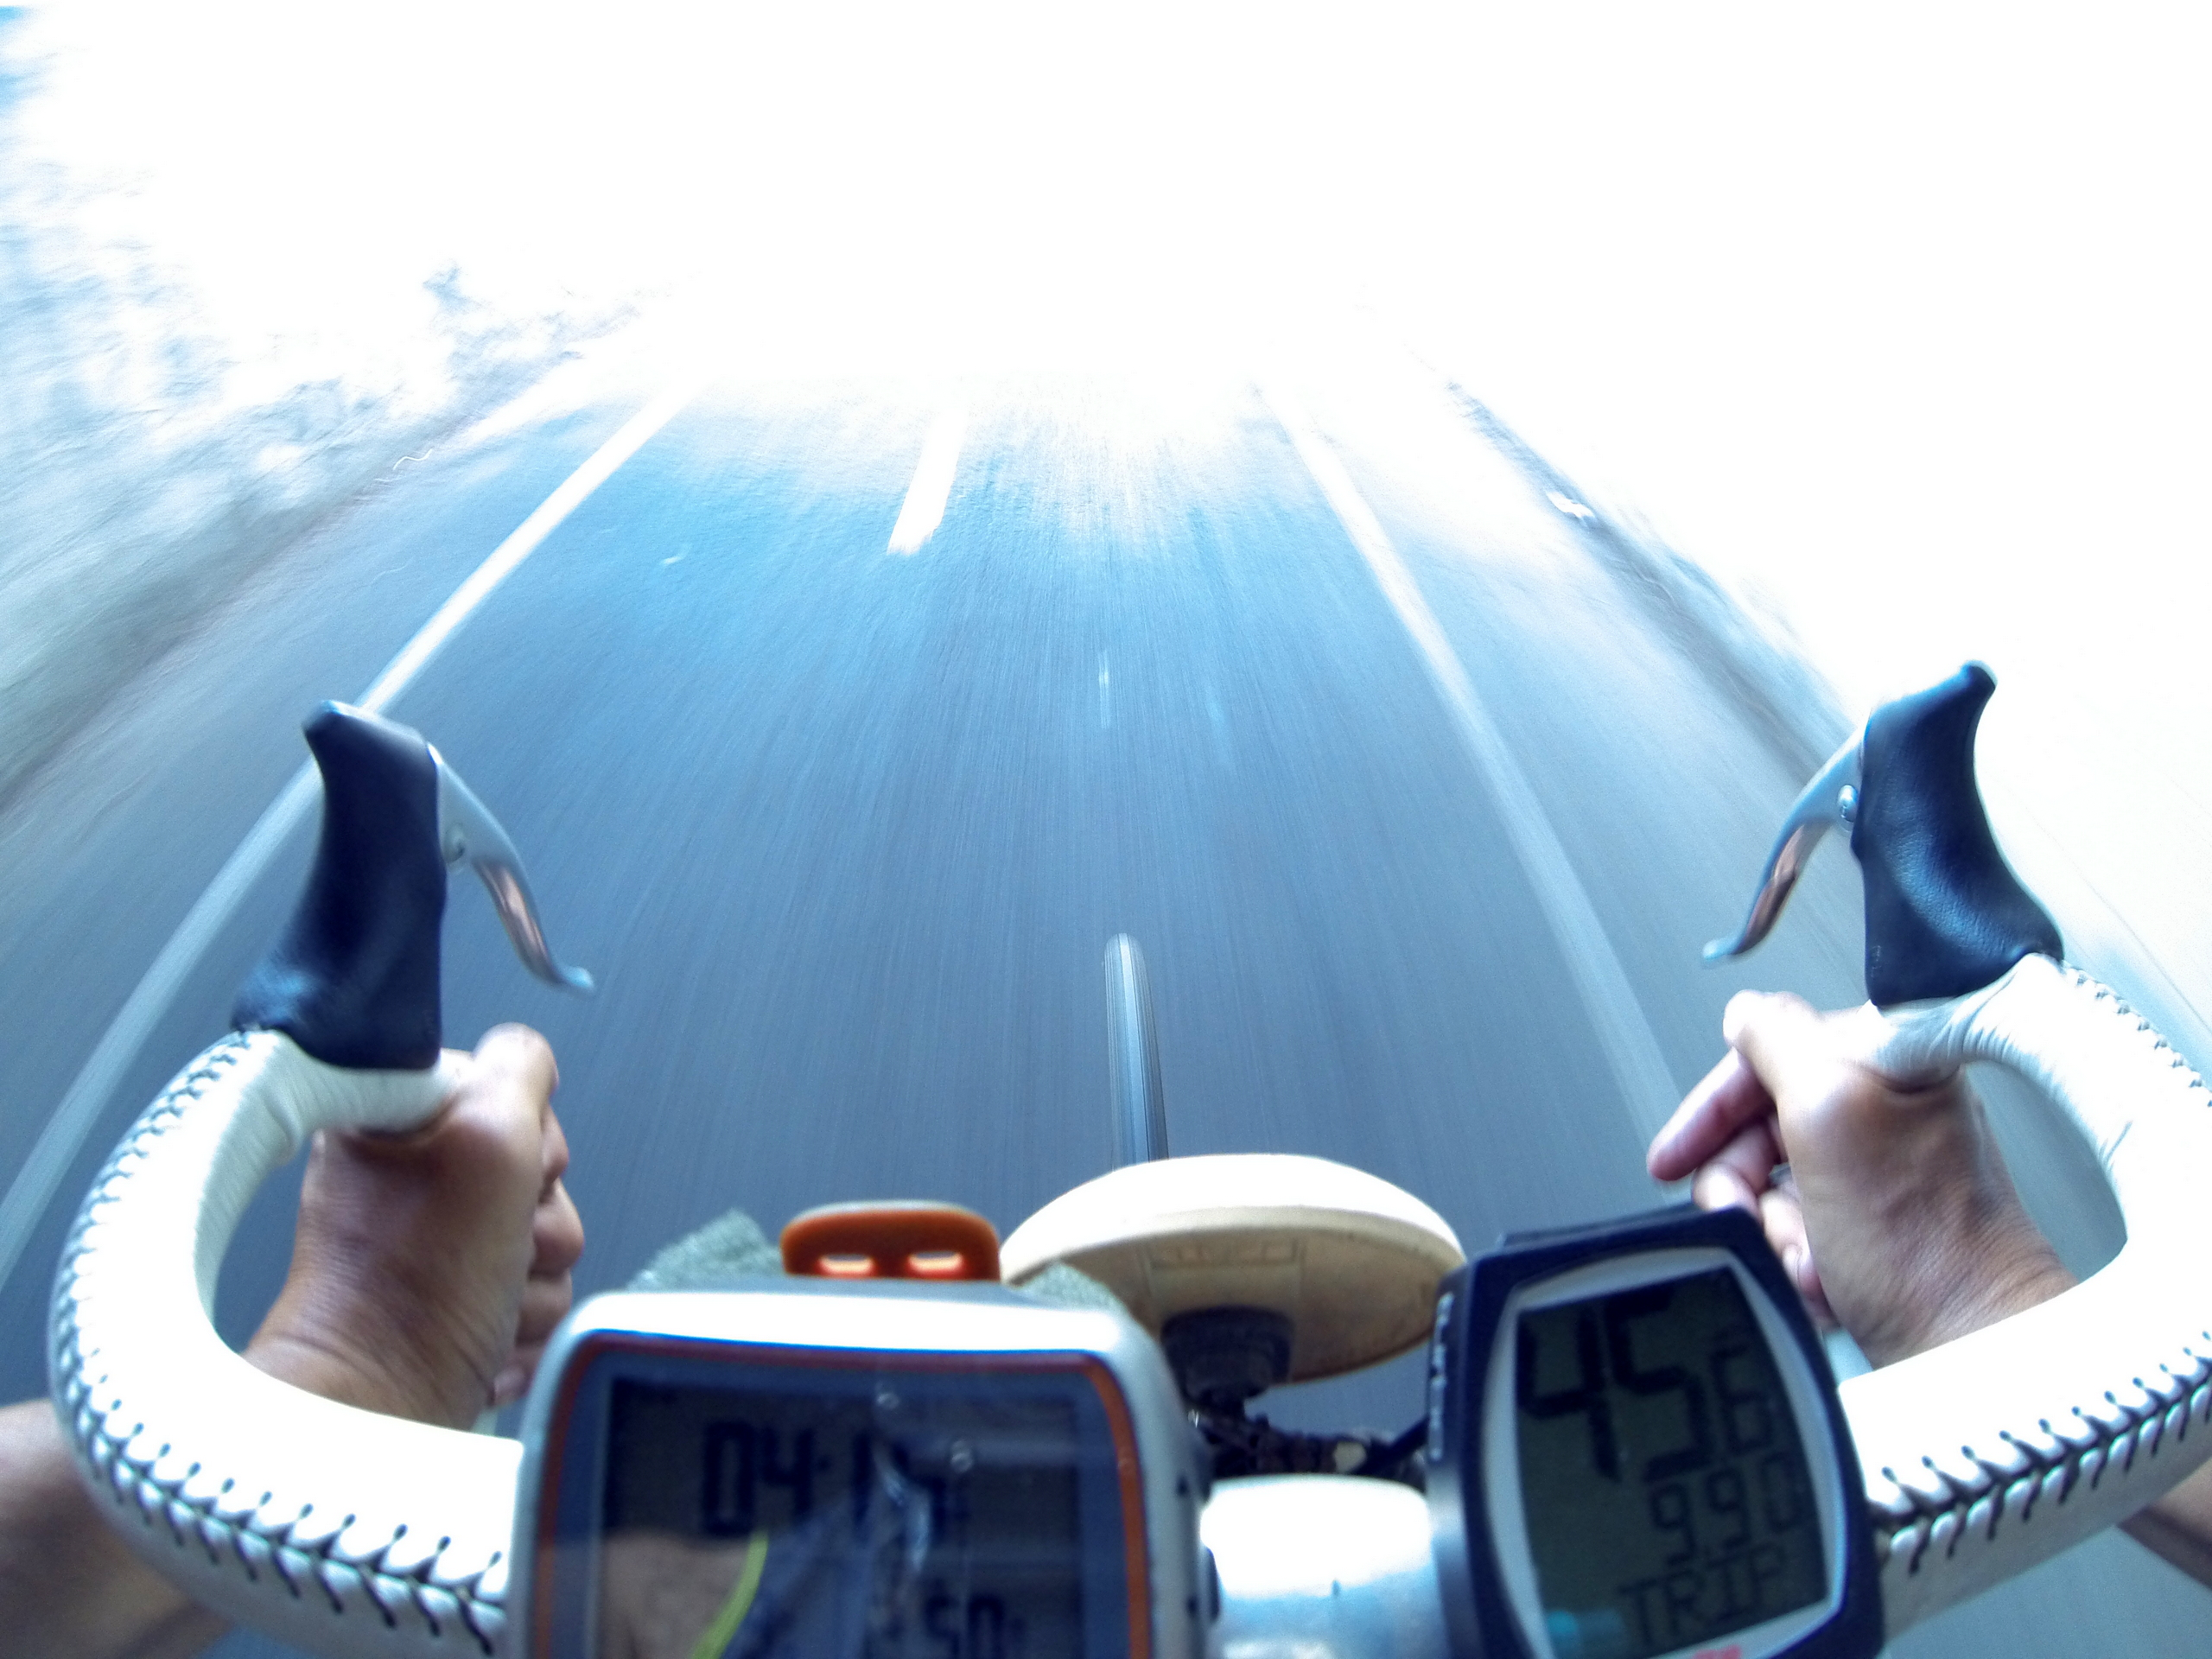 photo from a GoPro camera mounted on bicycle handlebars